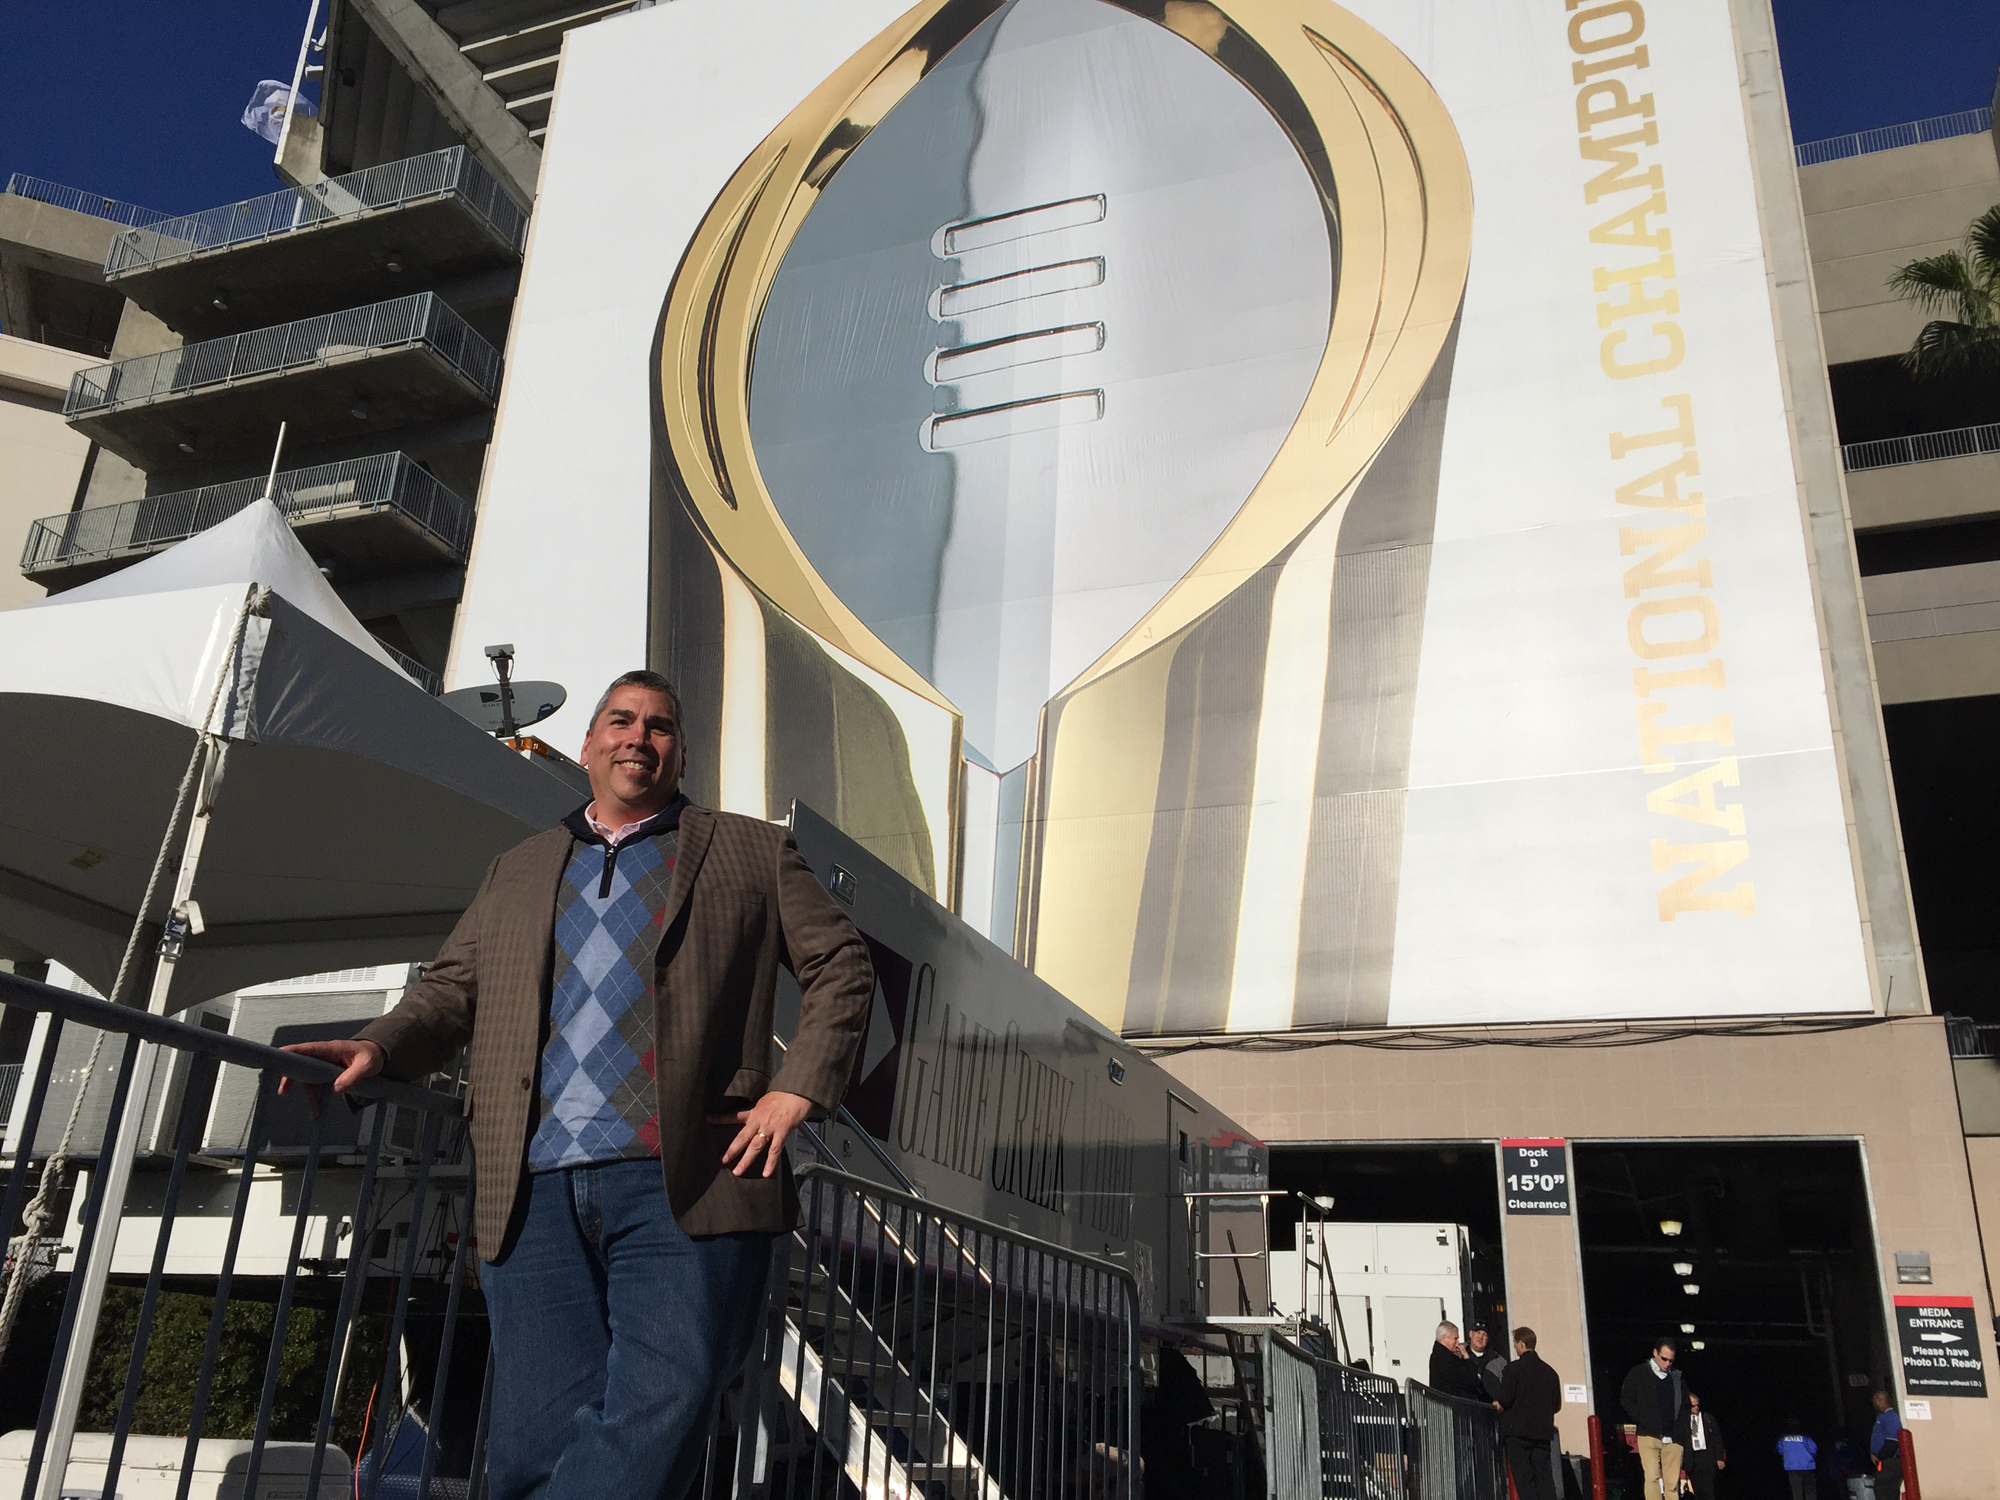 John LaChance, who heads up Remote Production Operations at the College Football Playoff Championship Game for ESPN, in the compound outside Raymond James Stadium.